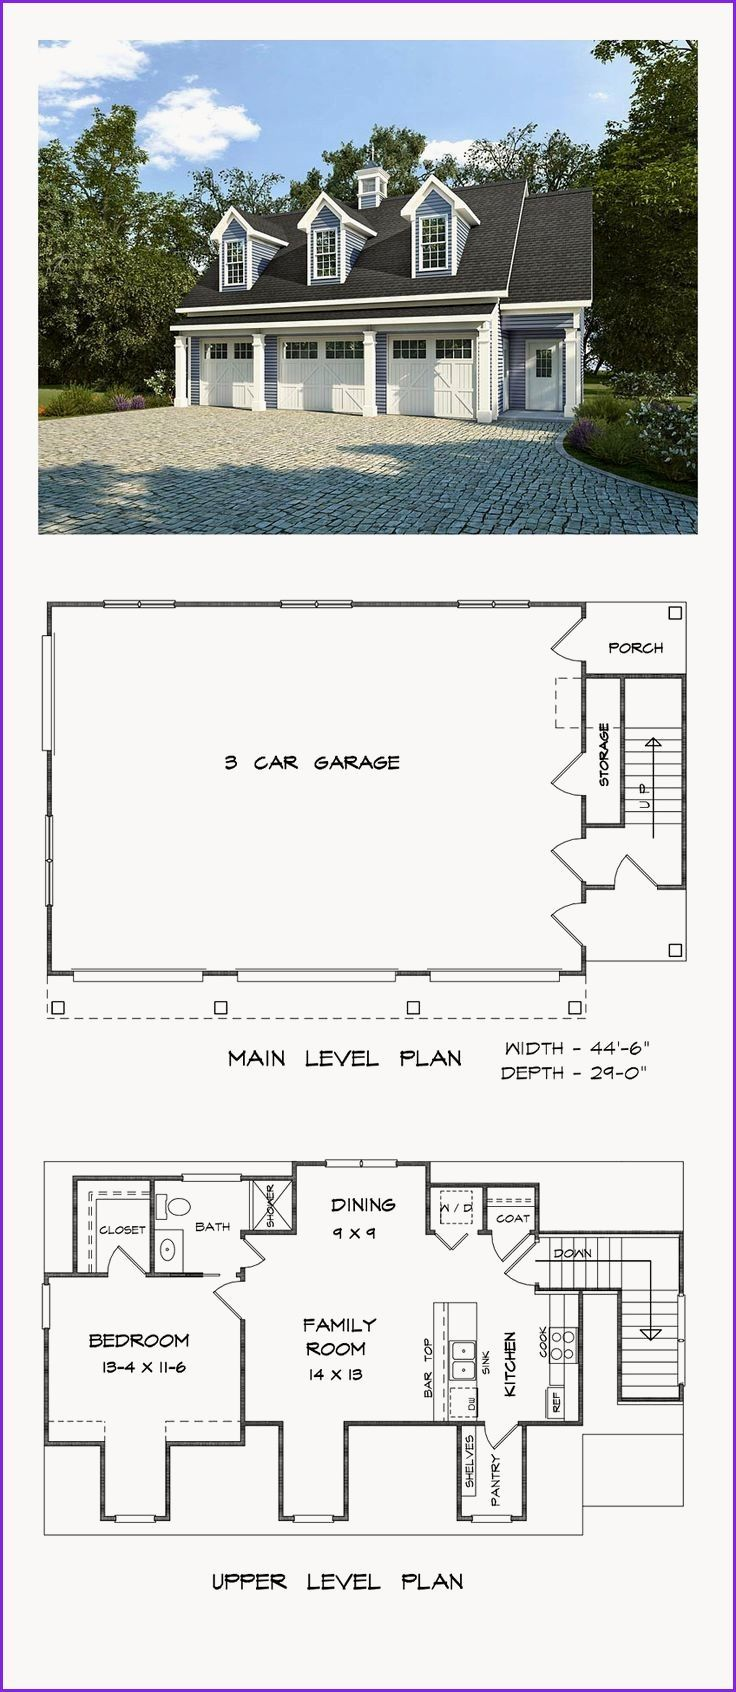 Awesome 4 Car Garage House Plans Carriage House Plans Garage Apartment Plan Garage House Plans